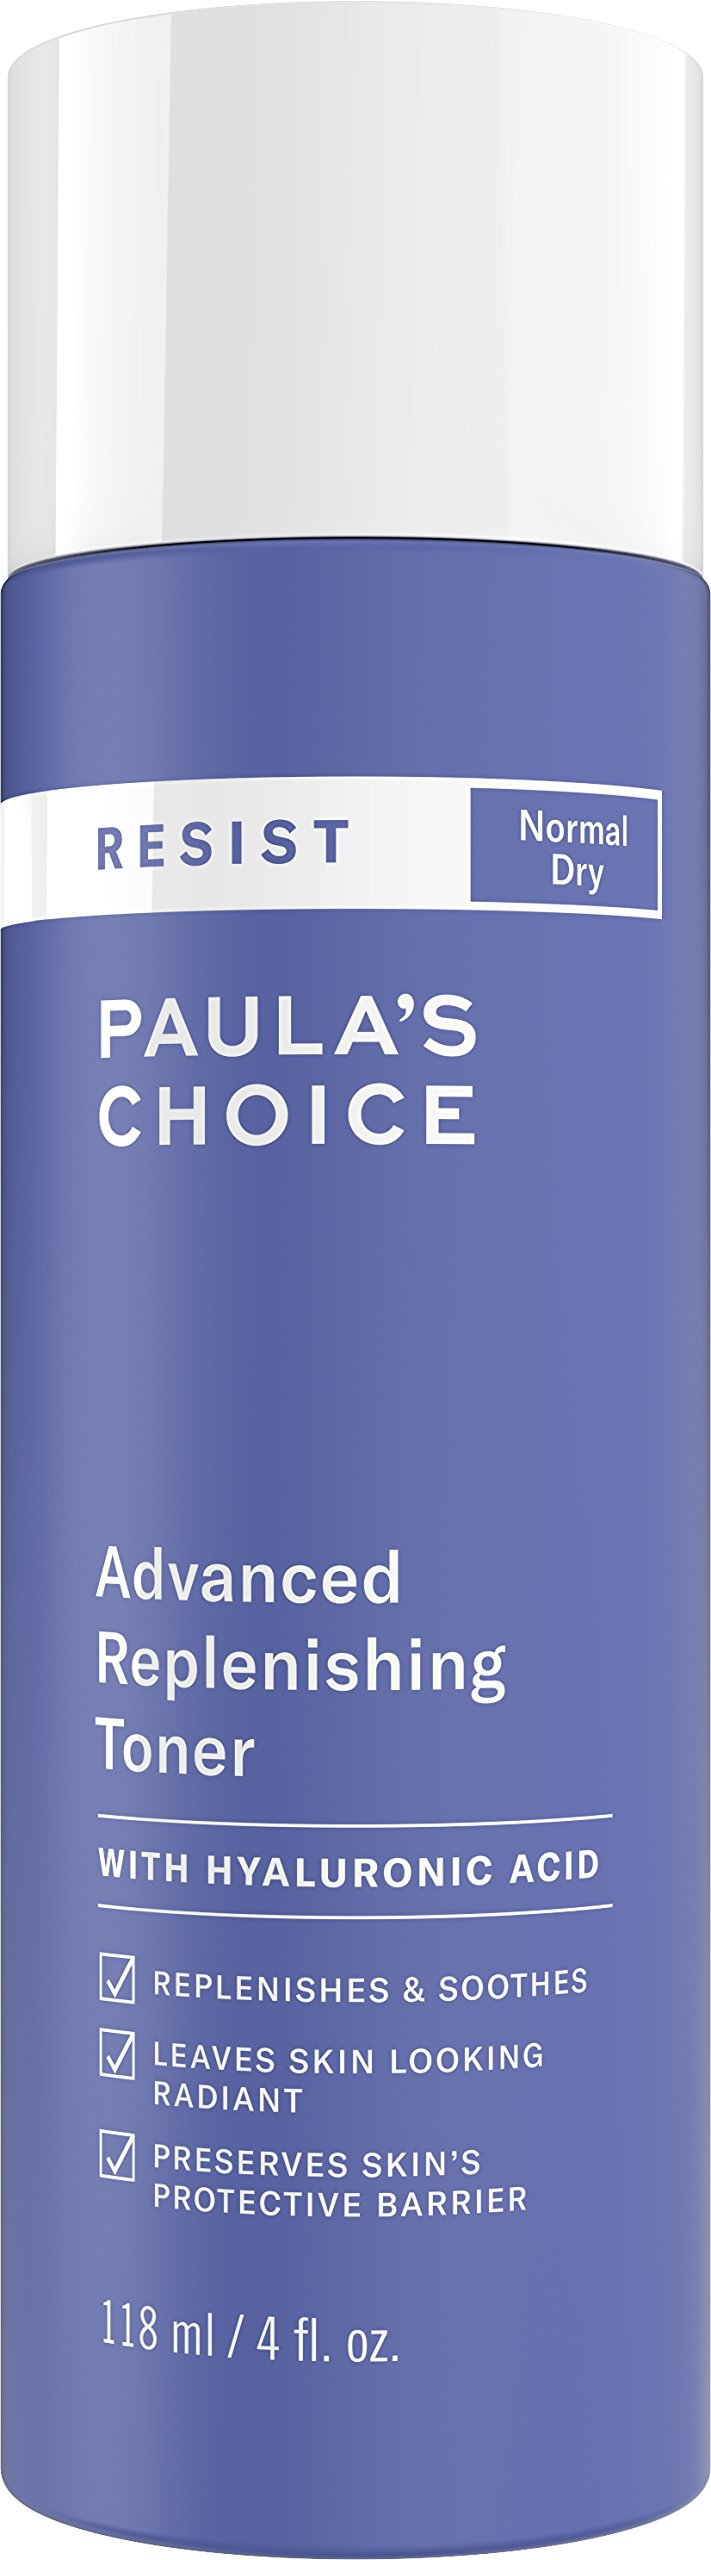 Paula's Choice-RESIST Advanced Replenishing Anti-Aging Toner, 4 Ounce Bottle, with Vitamins C & E